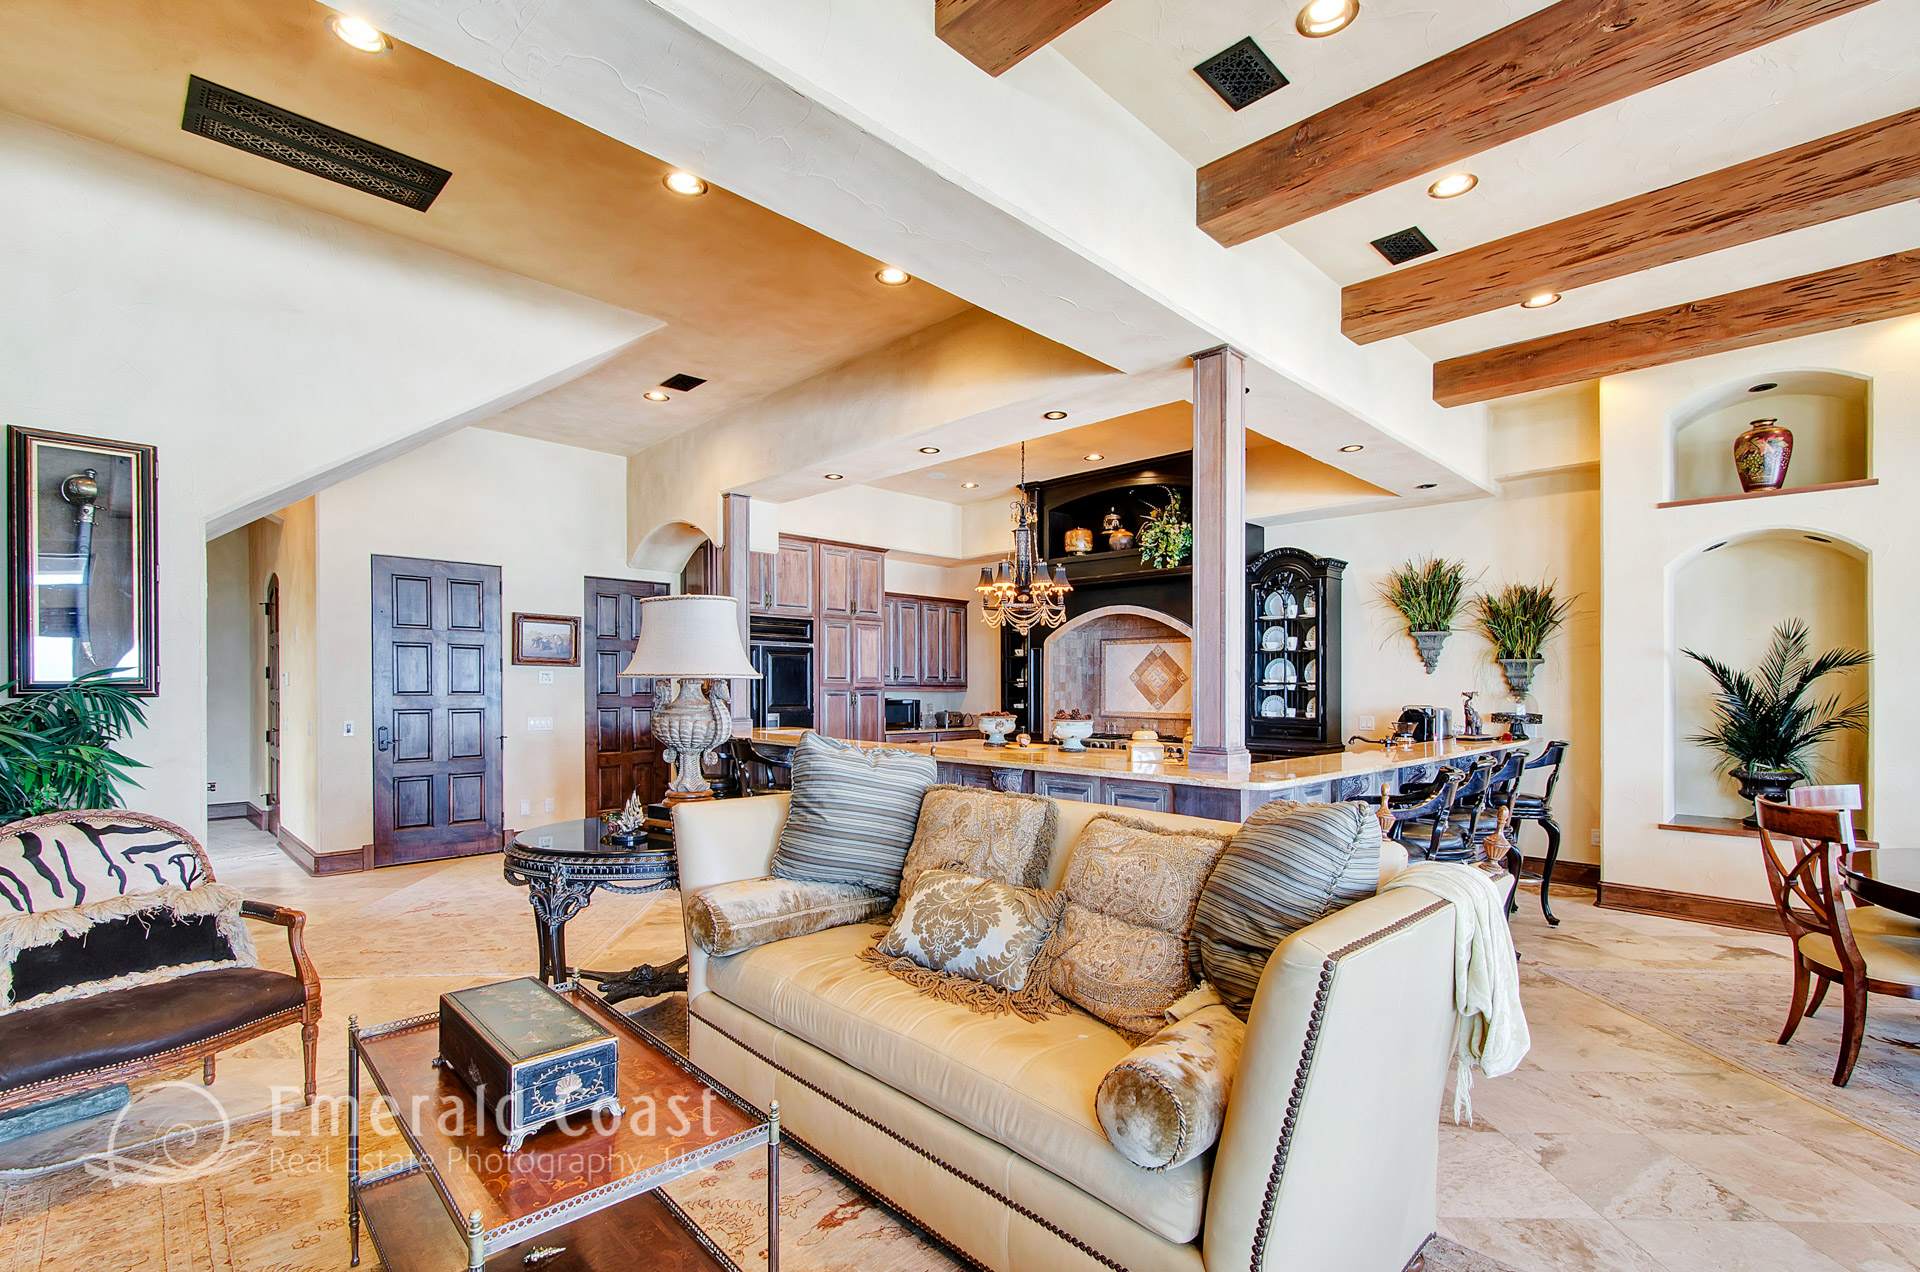 beach style living room in Destin